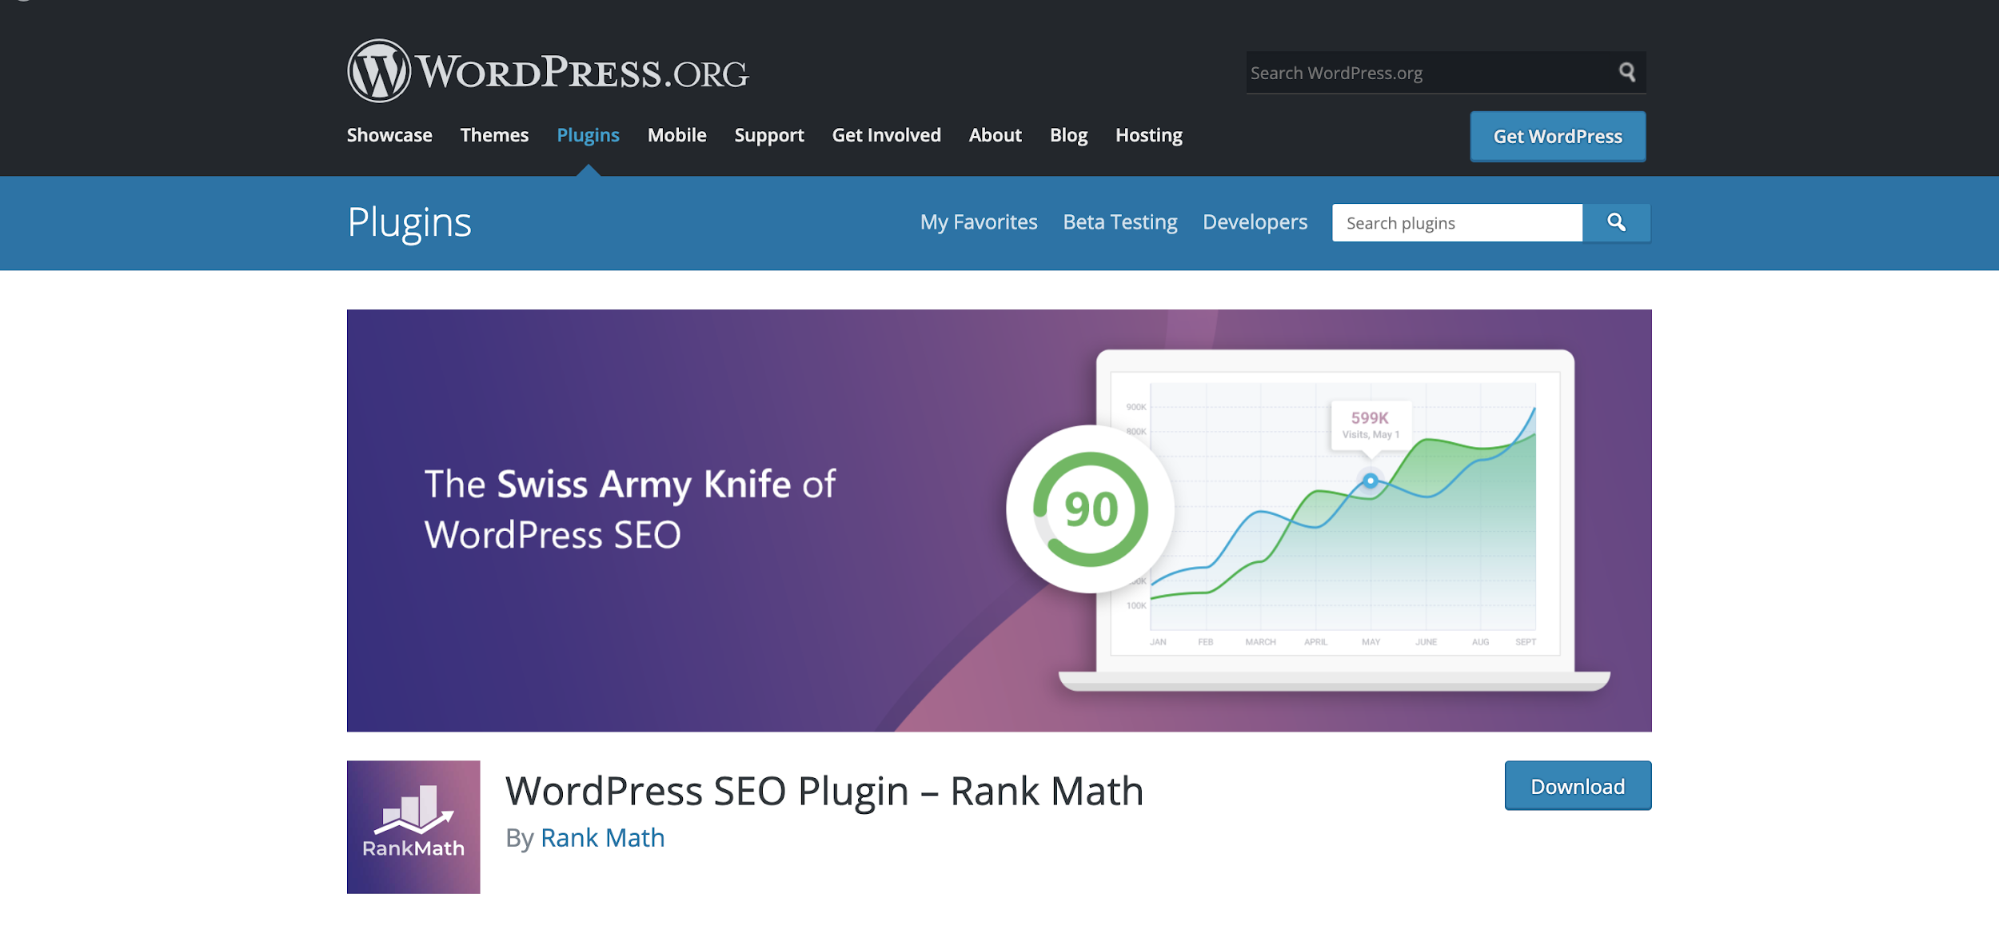 WordPress SEO Plugin Rank Math